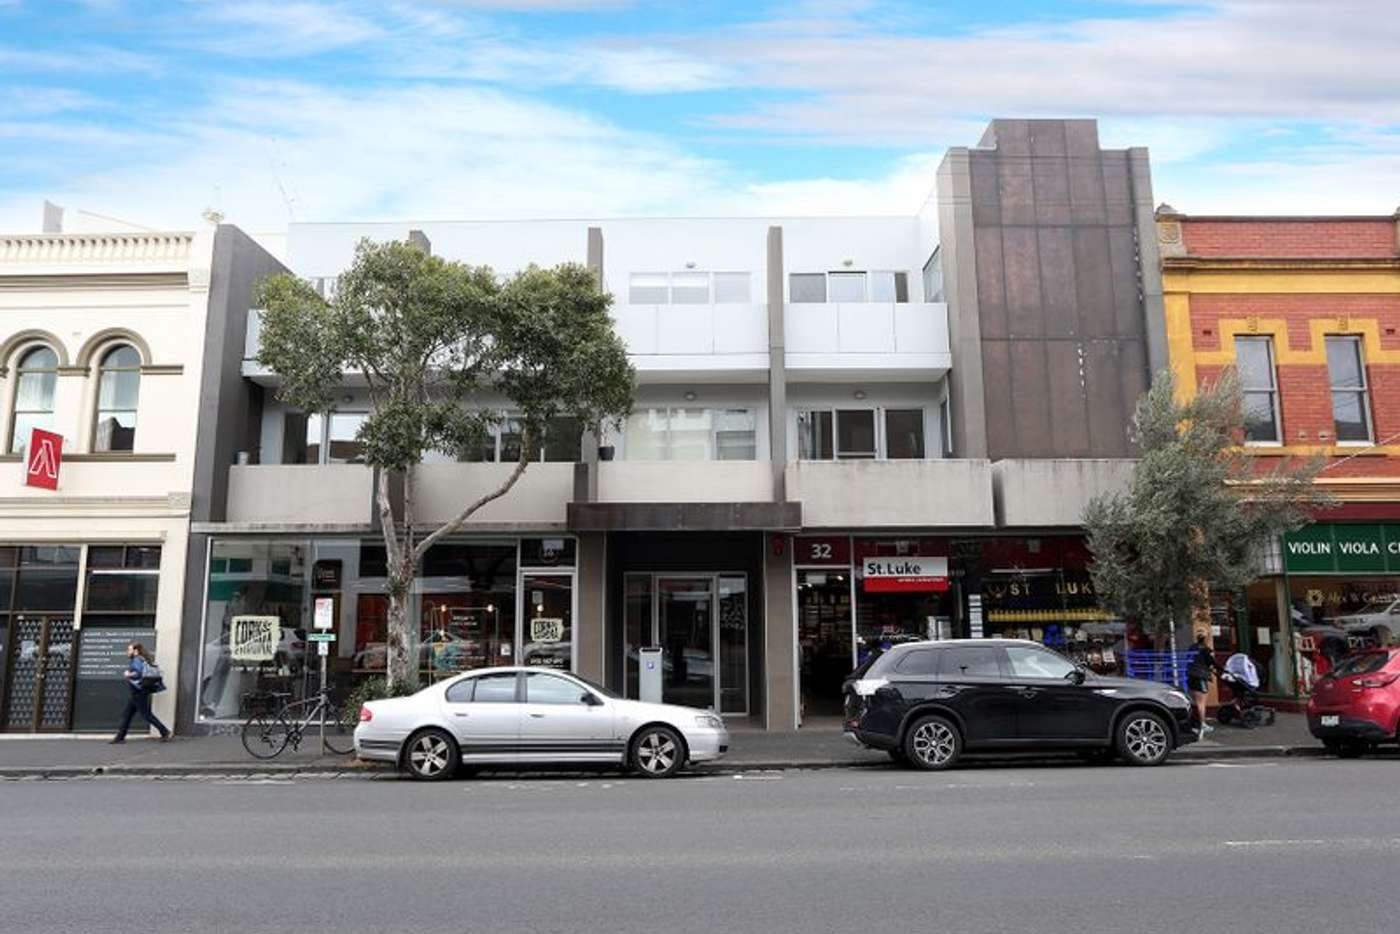 Main view of Homely apartment listing, 4/32-36 Smith Street, Collingwood VIC 3066